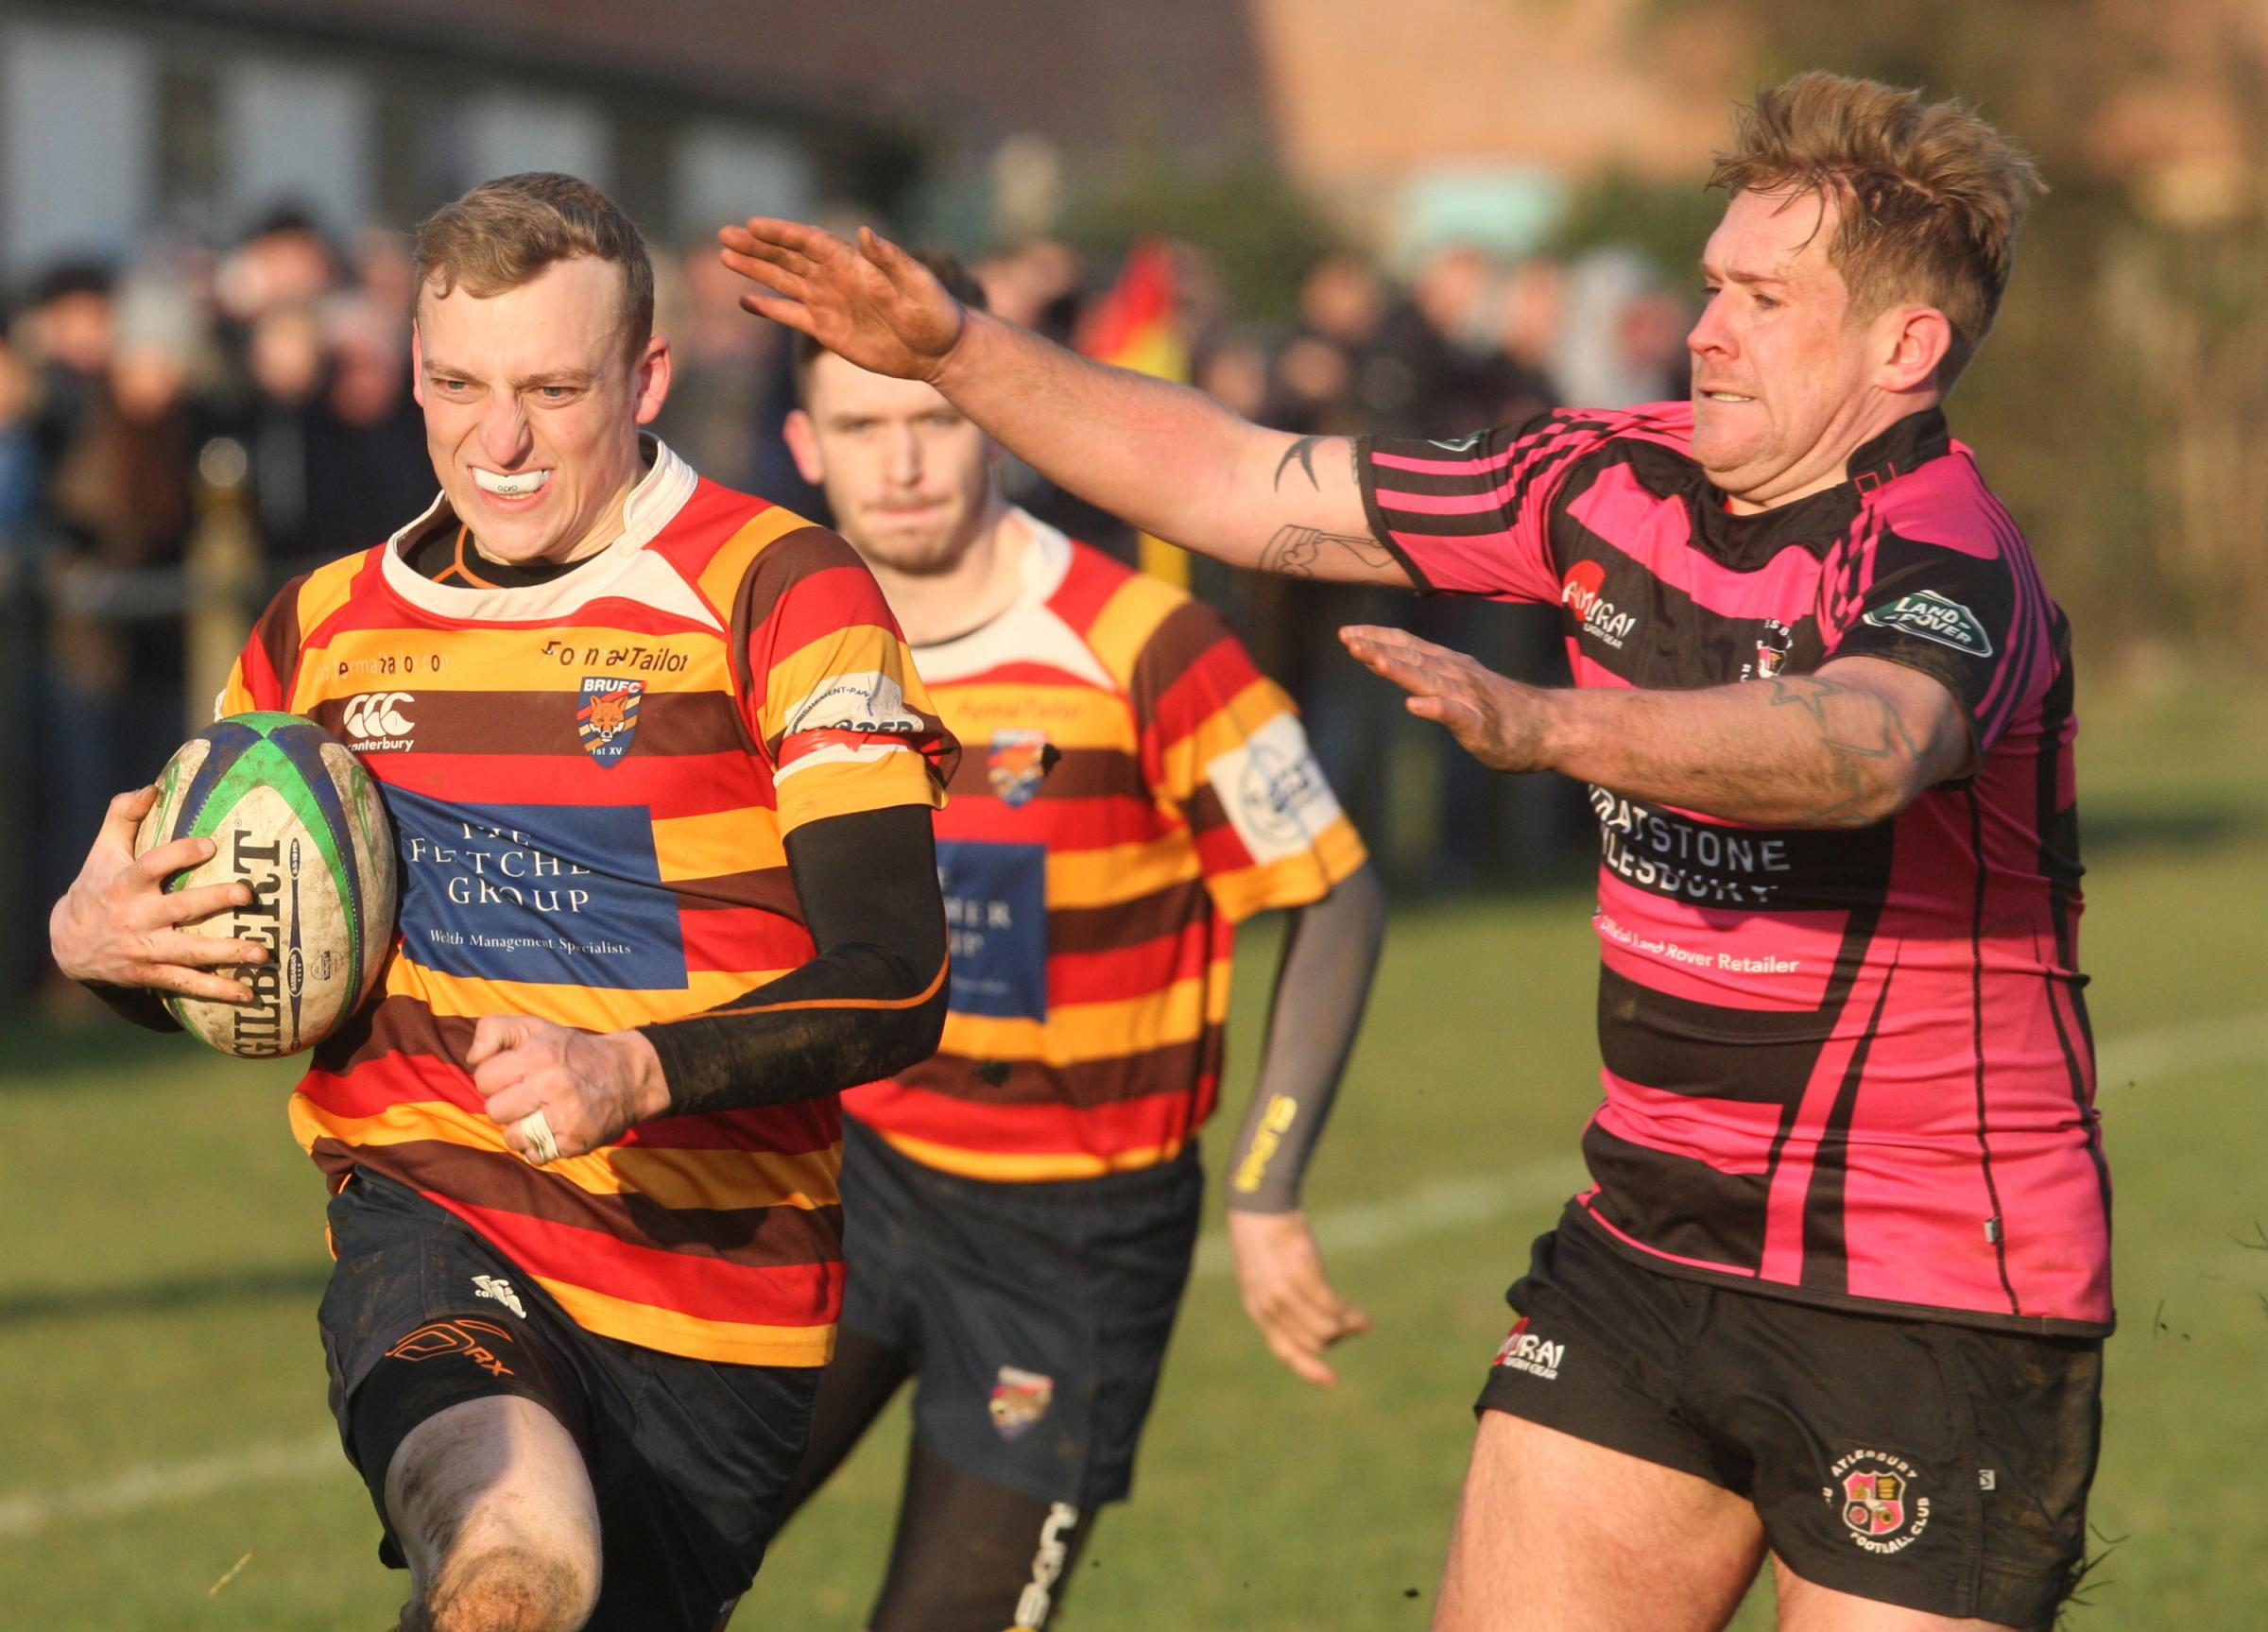 Peter Tarrega (left) scored Bicester's first try during their win over Wallingford in Southern Counties North